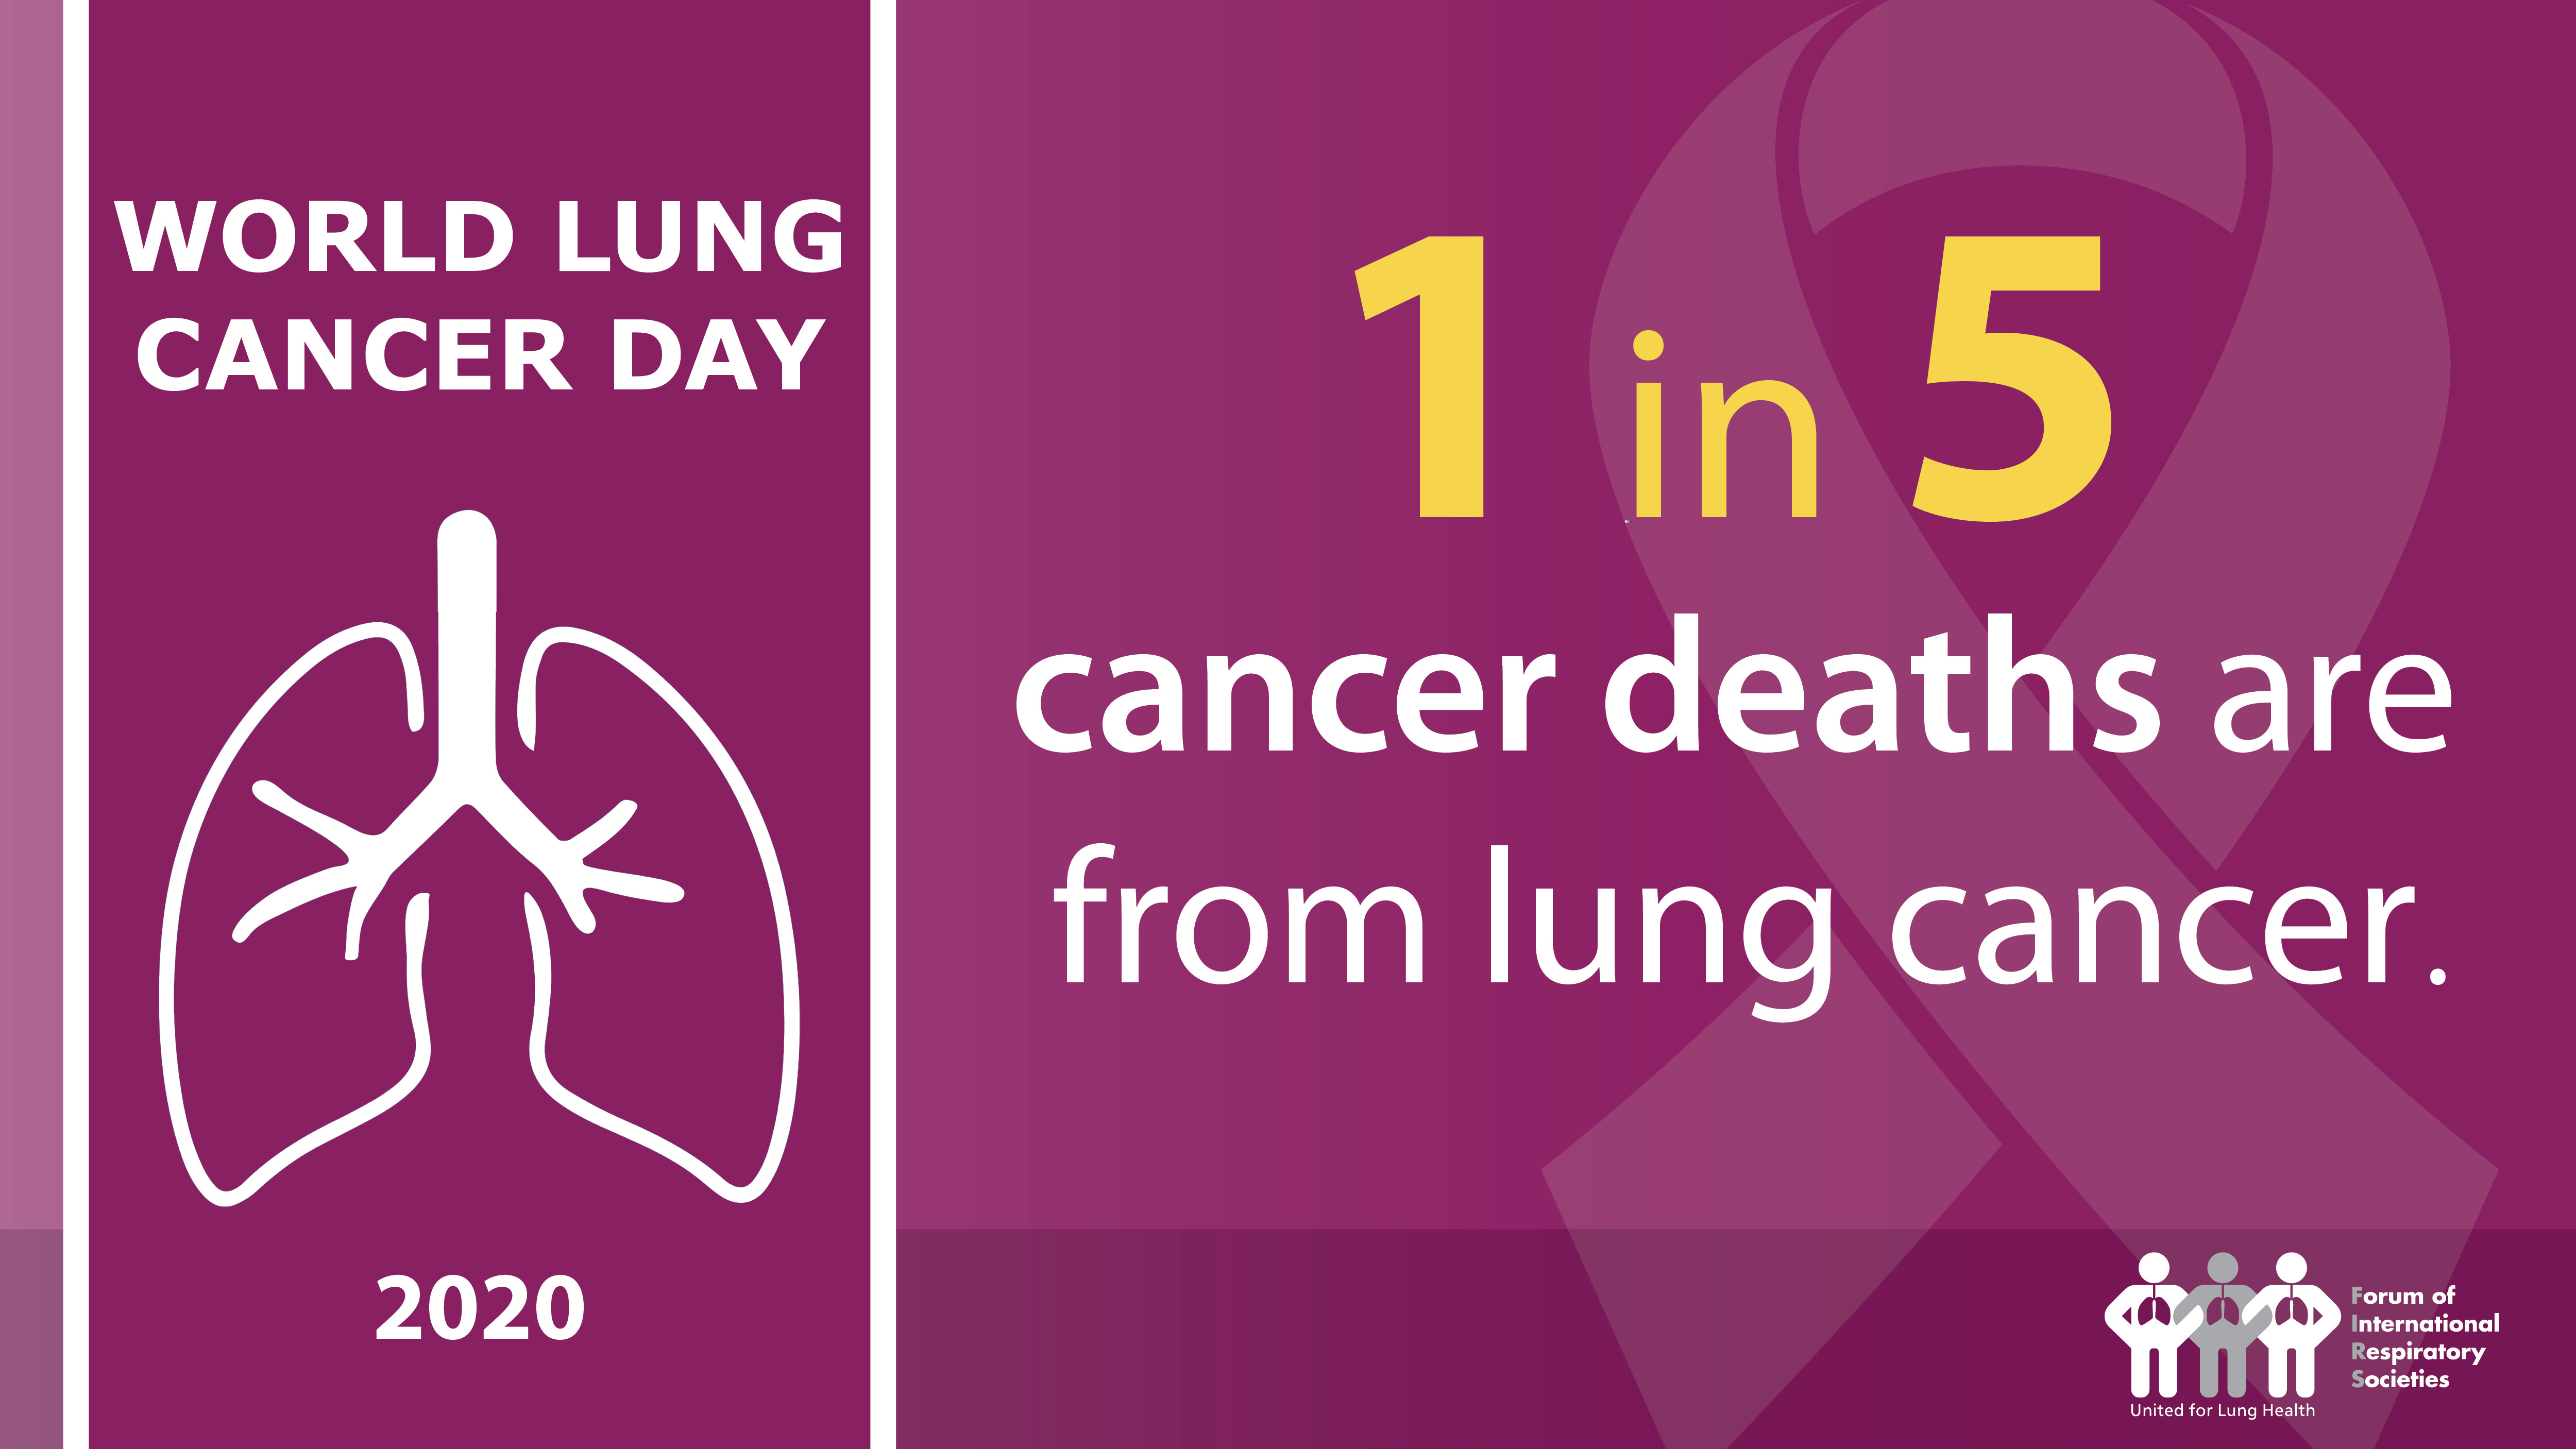 World Lung Cancer Day 2020:  Respiratory groups stress lung cancer risks and importance of early screening and treatment